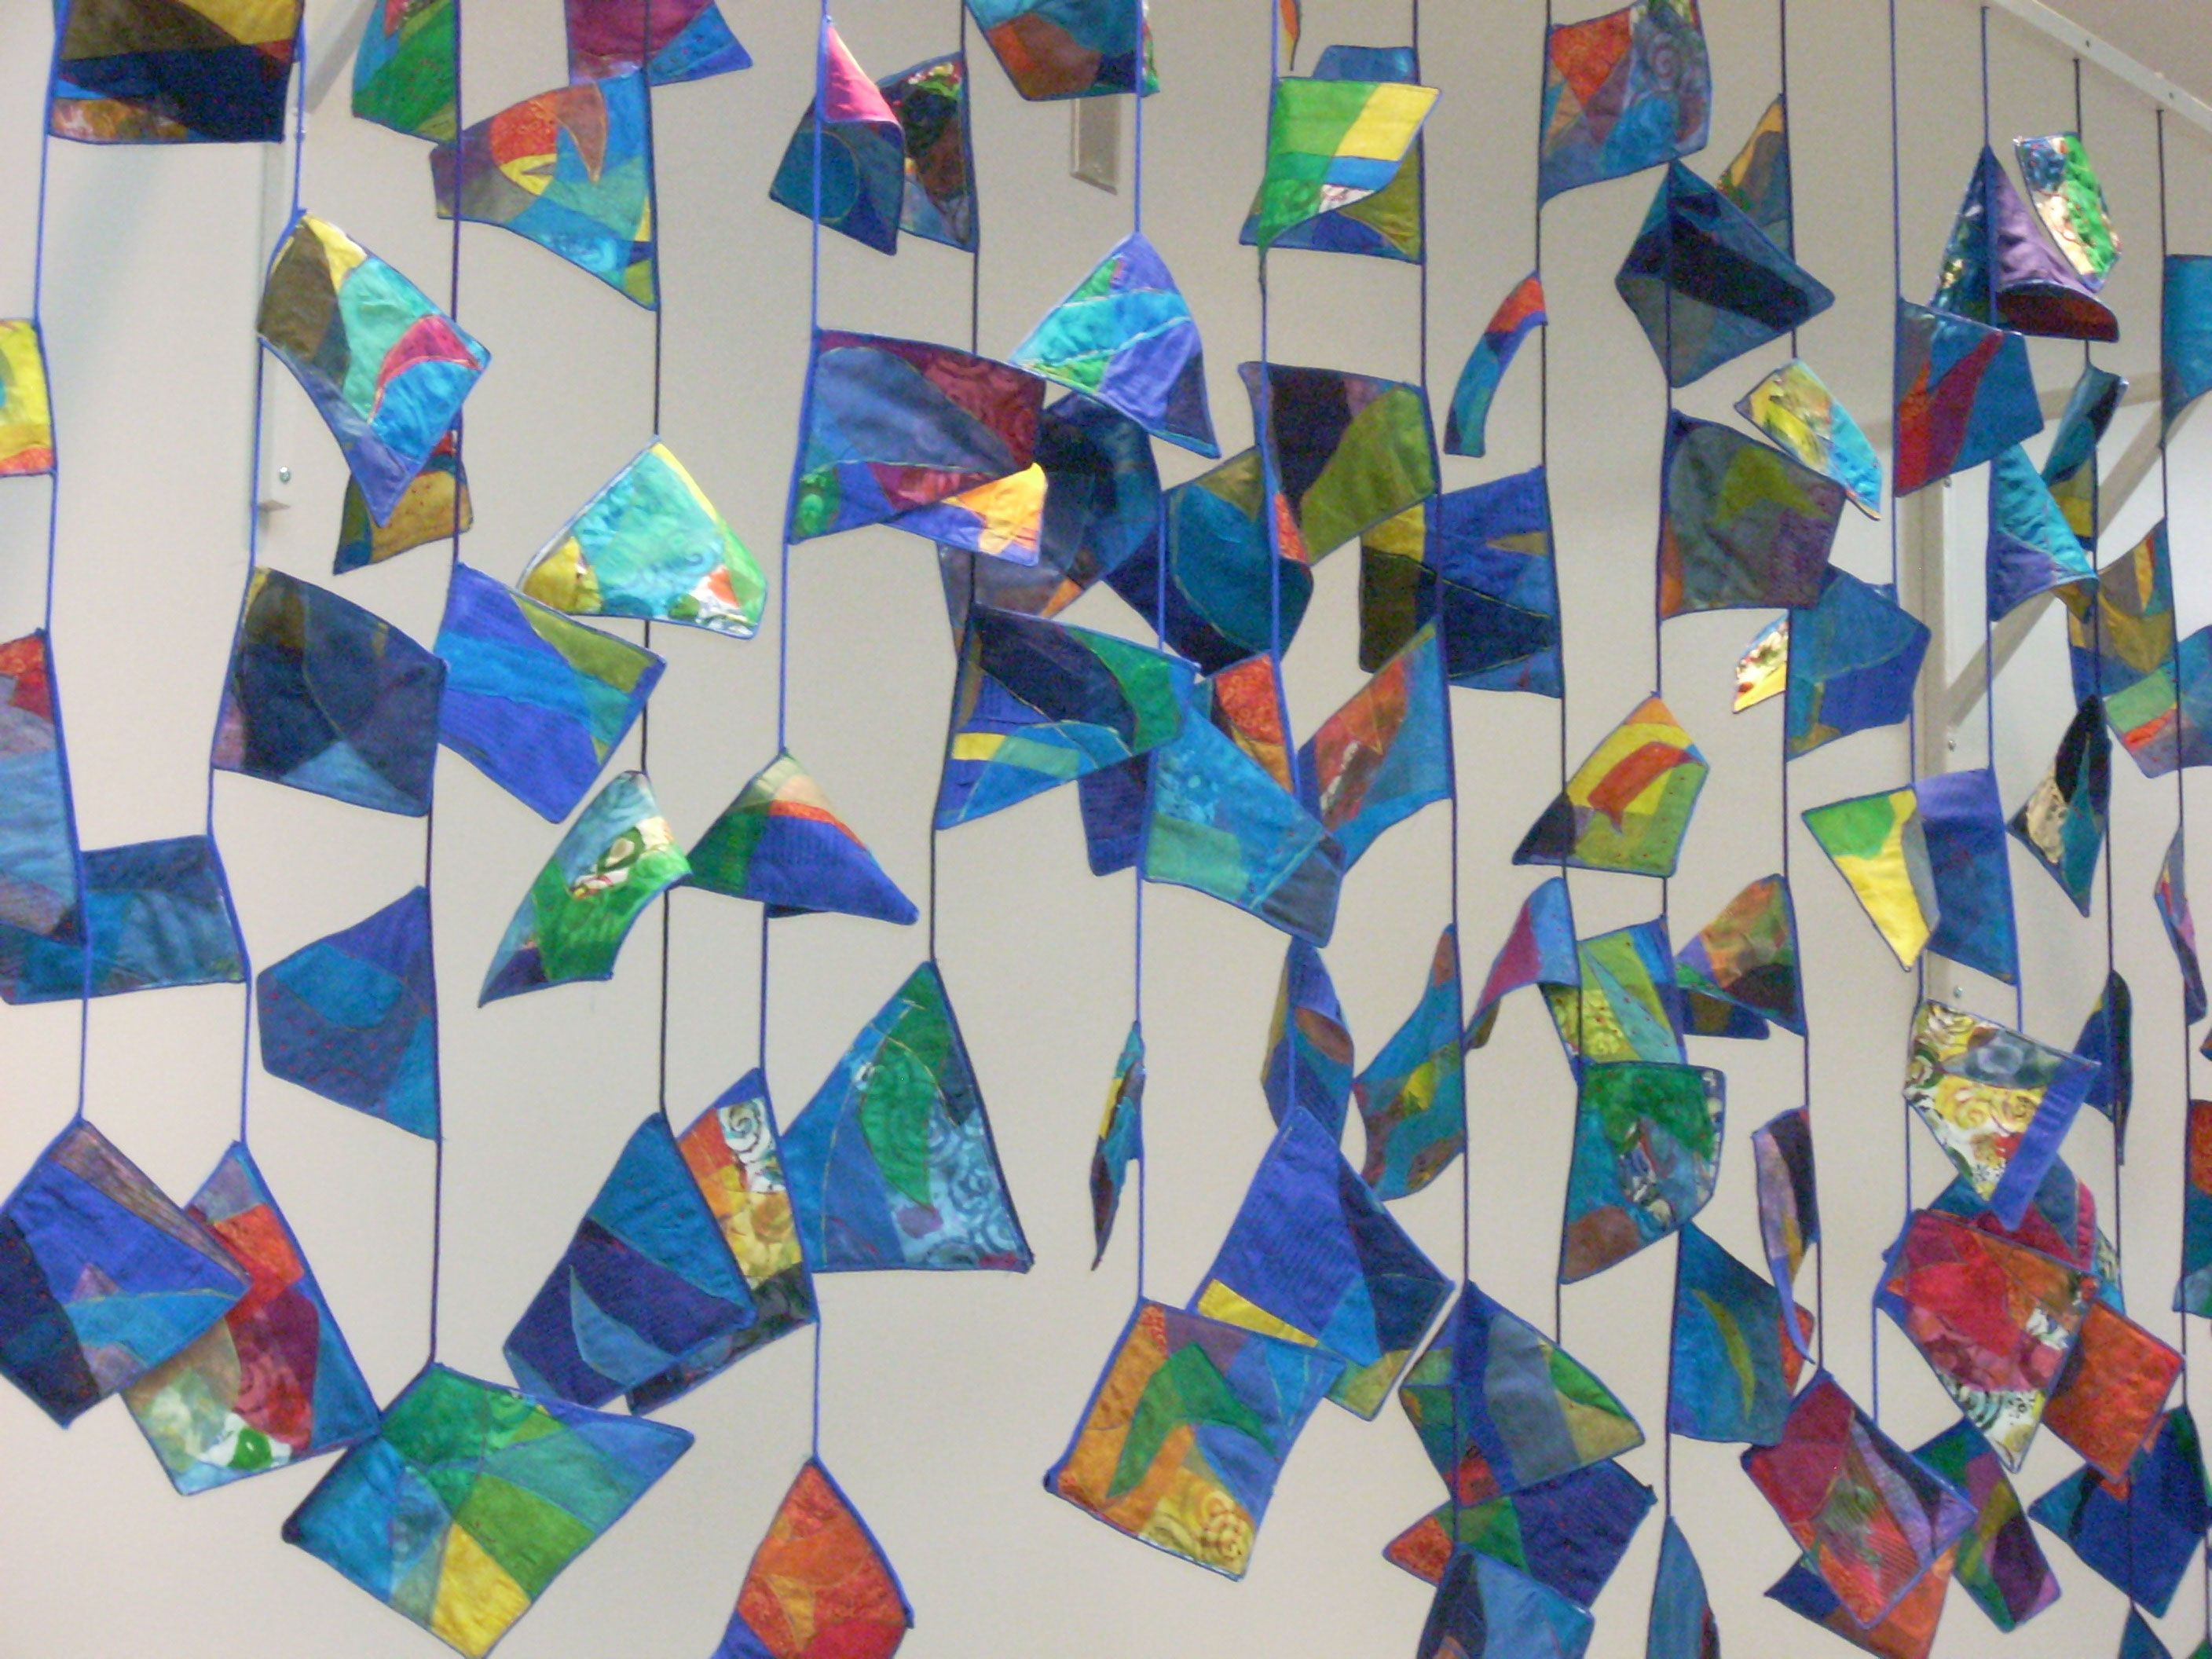 Watercolor Flags Community Art Art Projects For Adults Family